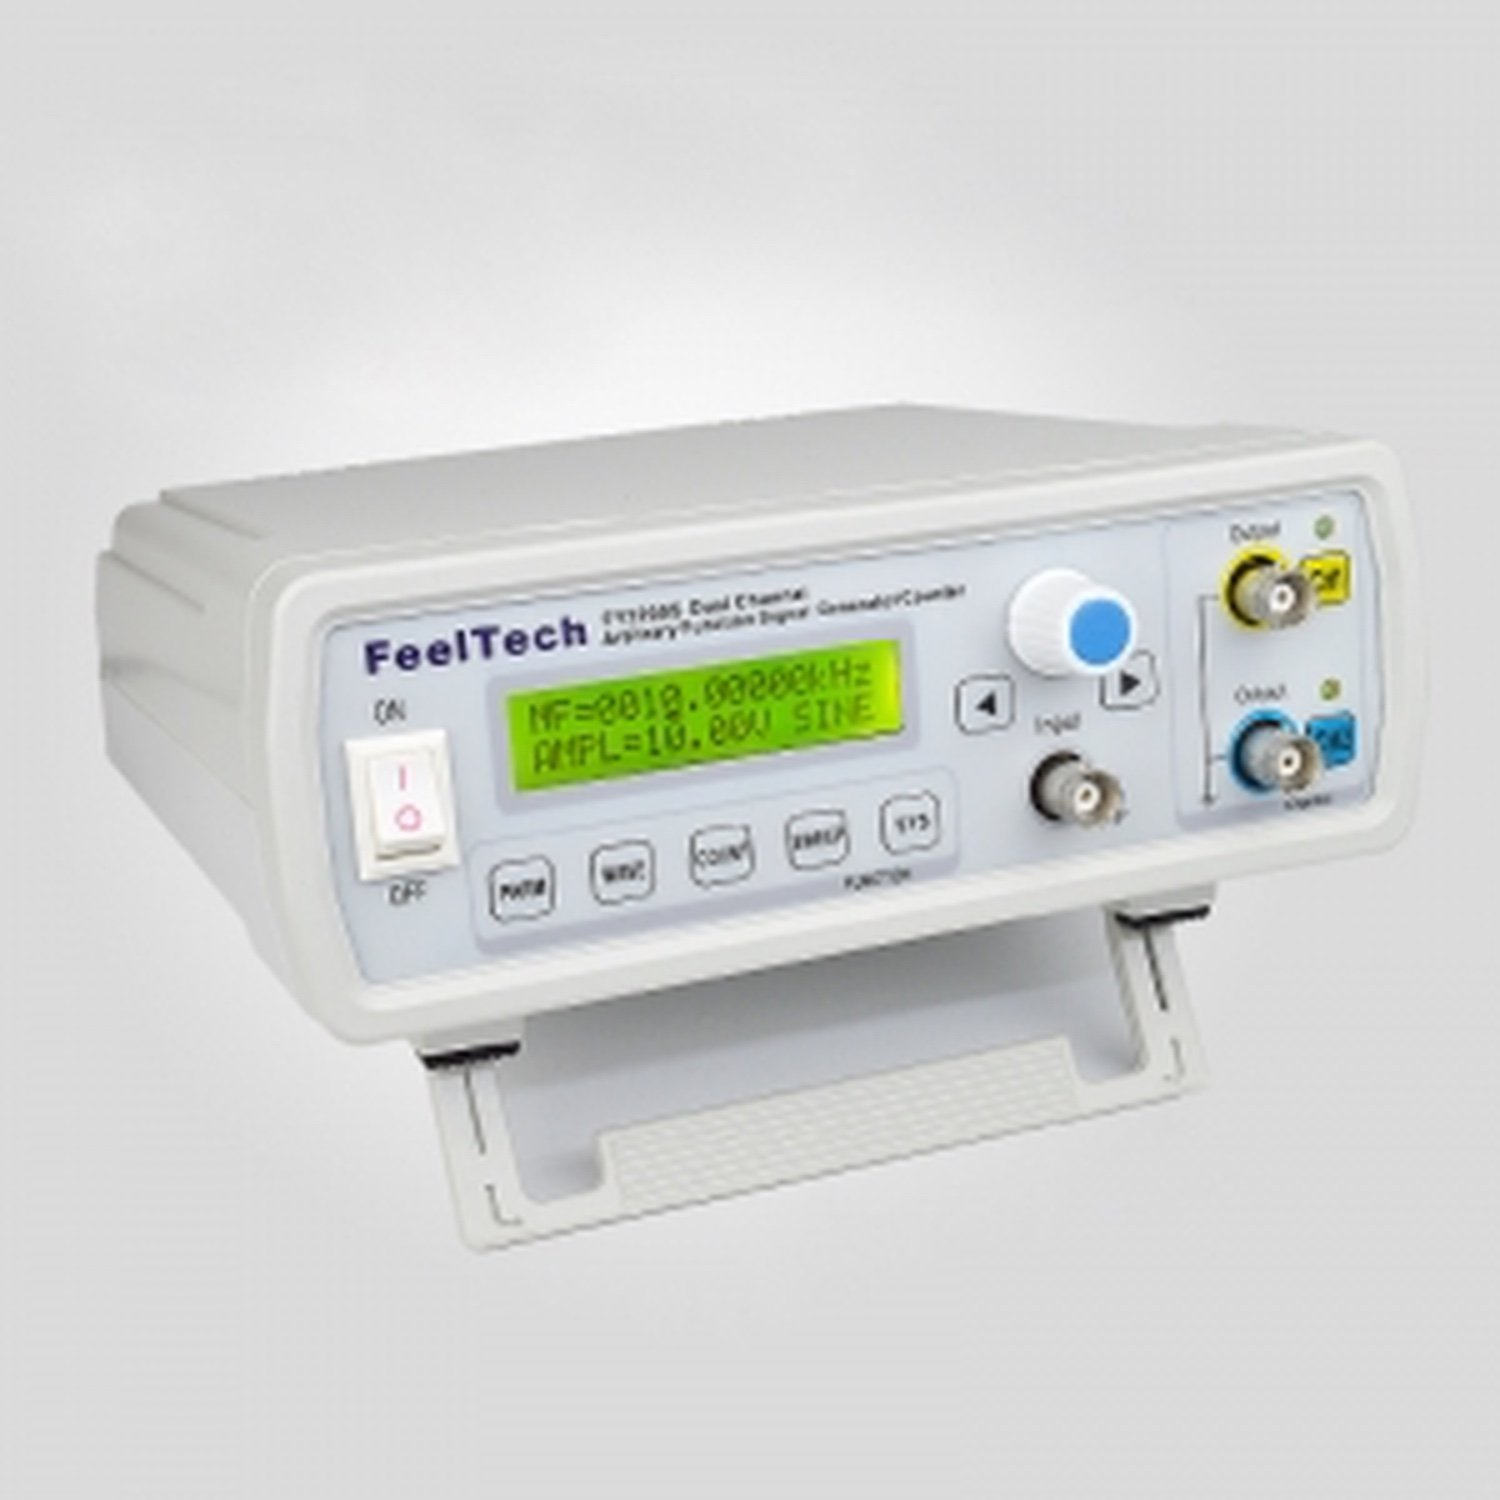 FY3212S-12MHz 12Mhz Dual-Channel DDS Function Arbitrary Waveform Signal Generator + sweep + Software fast arrival dds 3x25 dc 25 mhz pc function usb arbitrary waveform generators